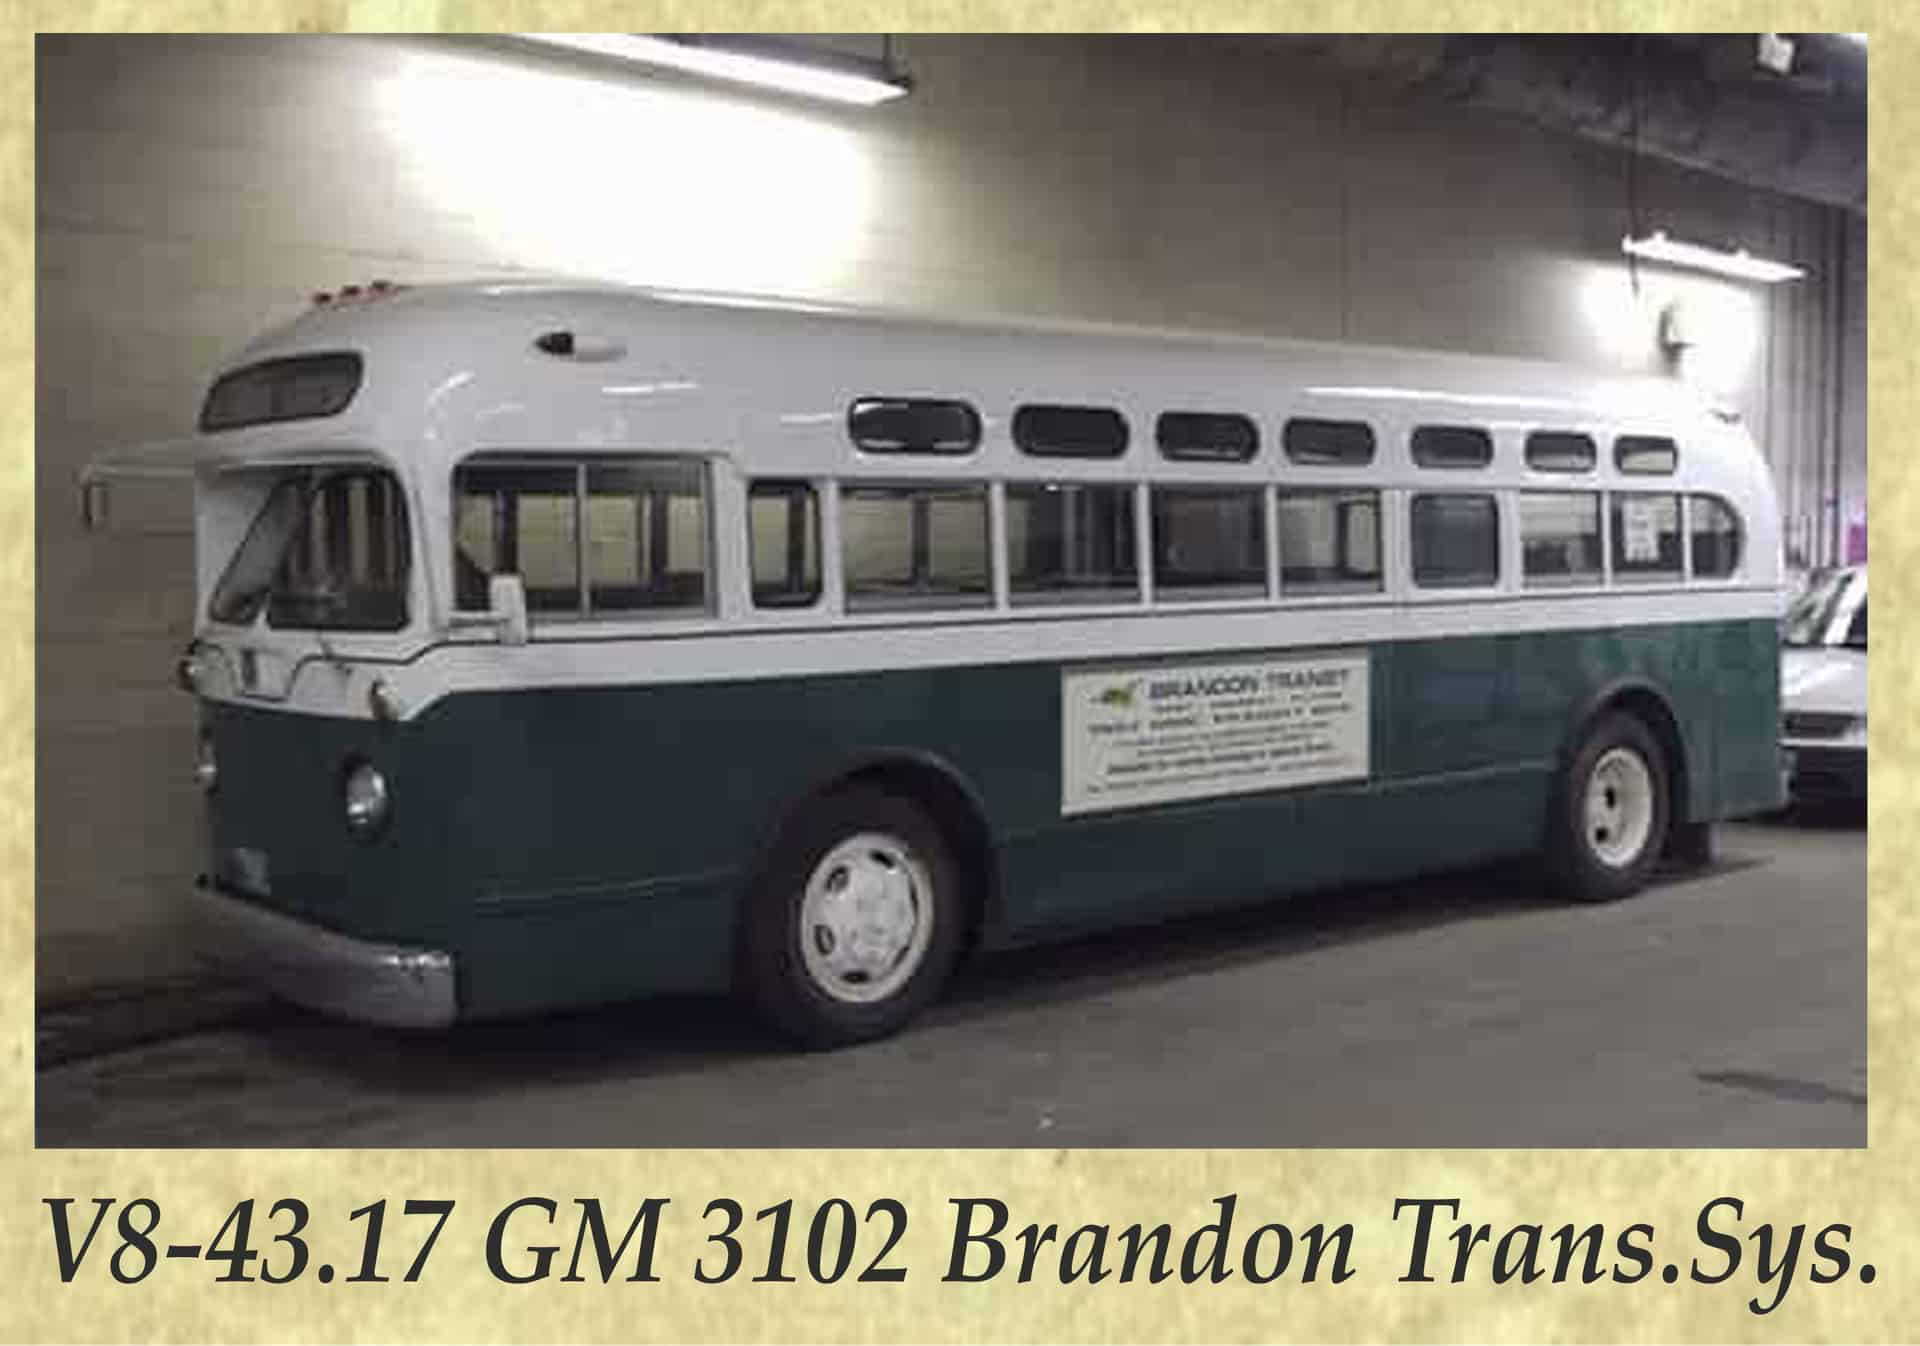 V8-43.17 GM 3102 Brandon Trans.Sys.